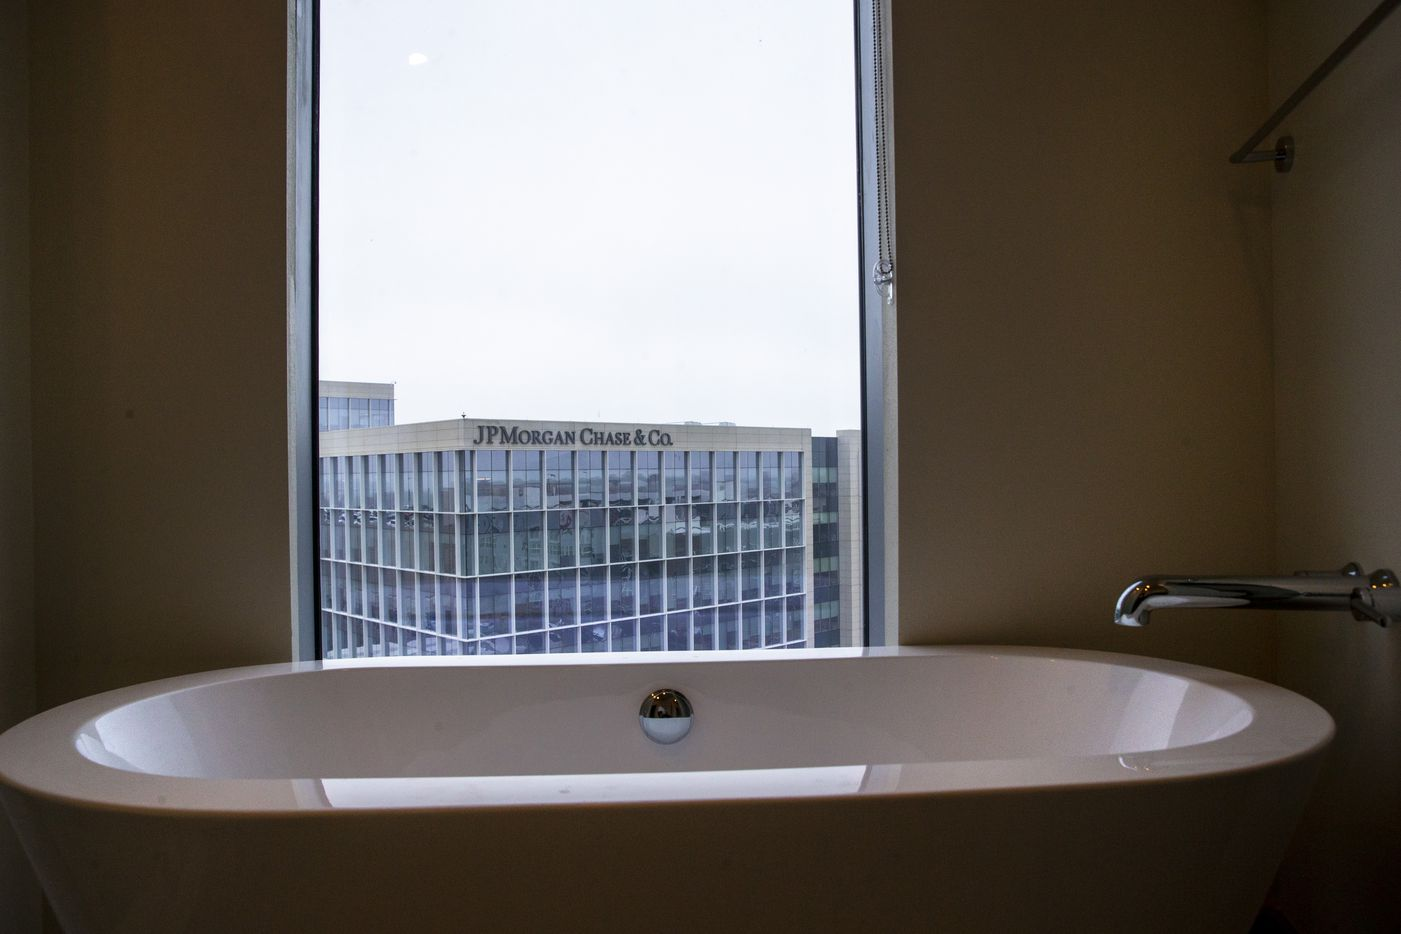 A bathtub in a two-bedroom unit at the new LVL 29 apartment high-rise looks out over the JPMorgan Chase offices.